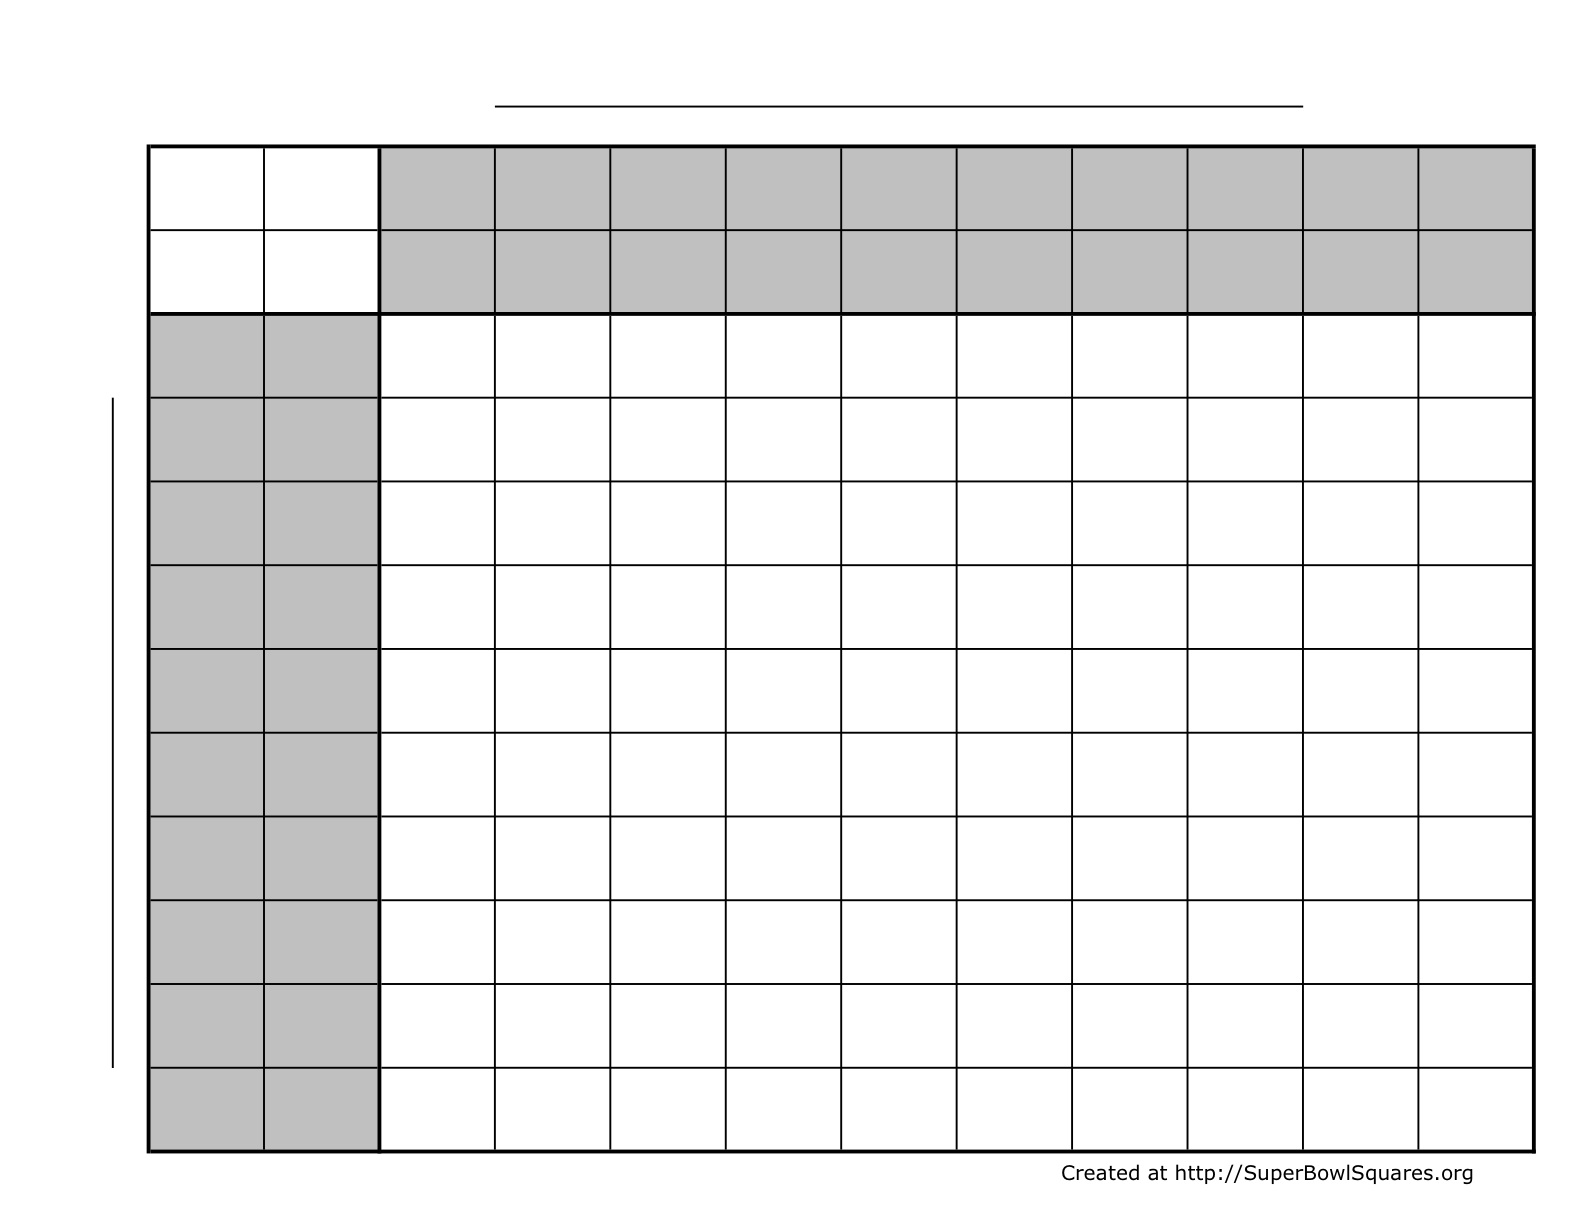 Use a 5 by 5 grid, where each square has two numbers for each team